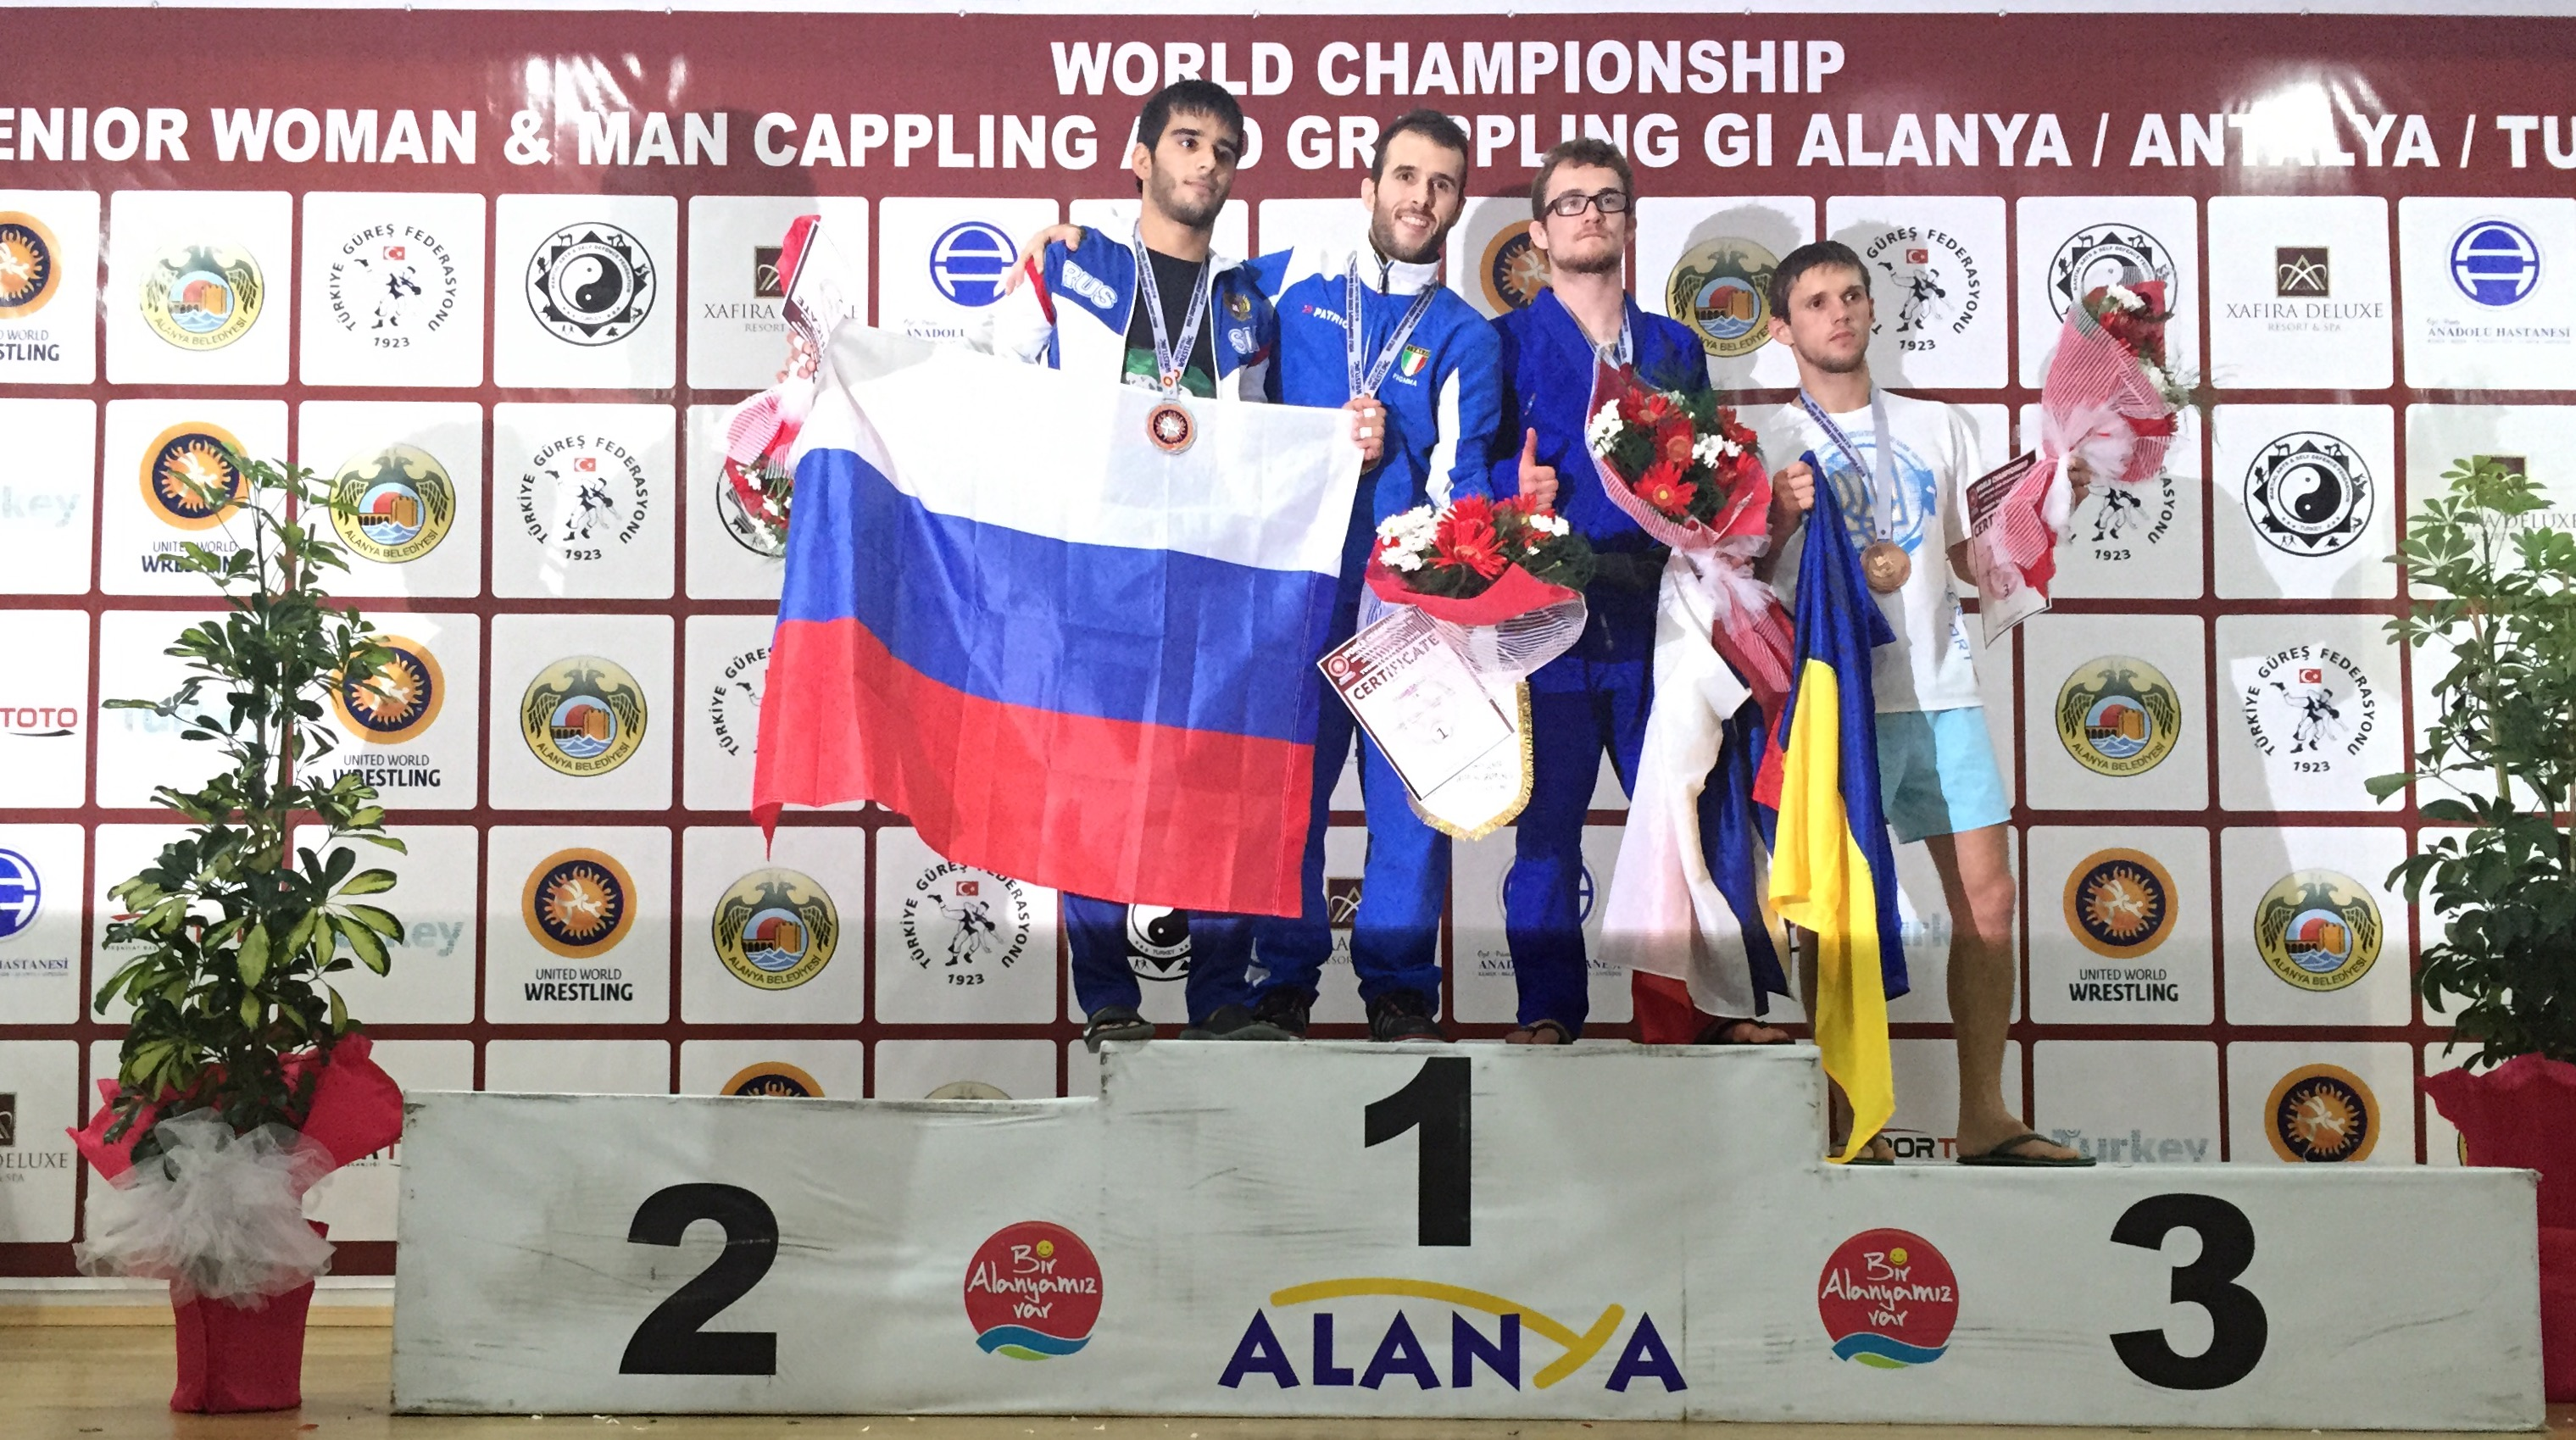 Marcel Leteri Sasso de Oliveira, World Champion at the 2015 United World Wrestling - Grappling World Championship held in Turkey.